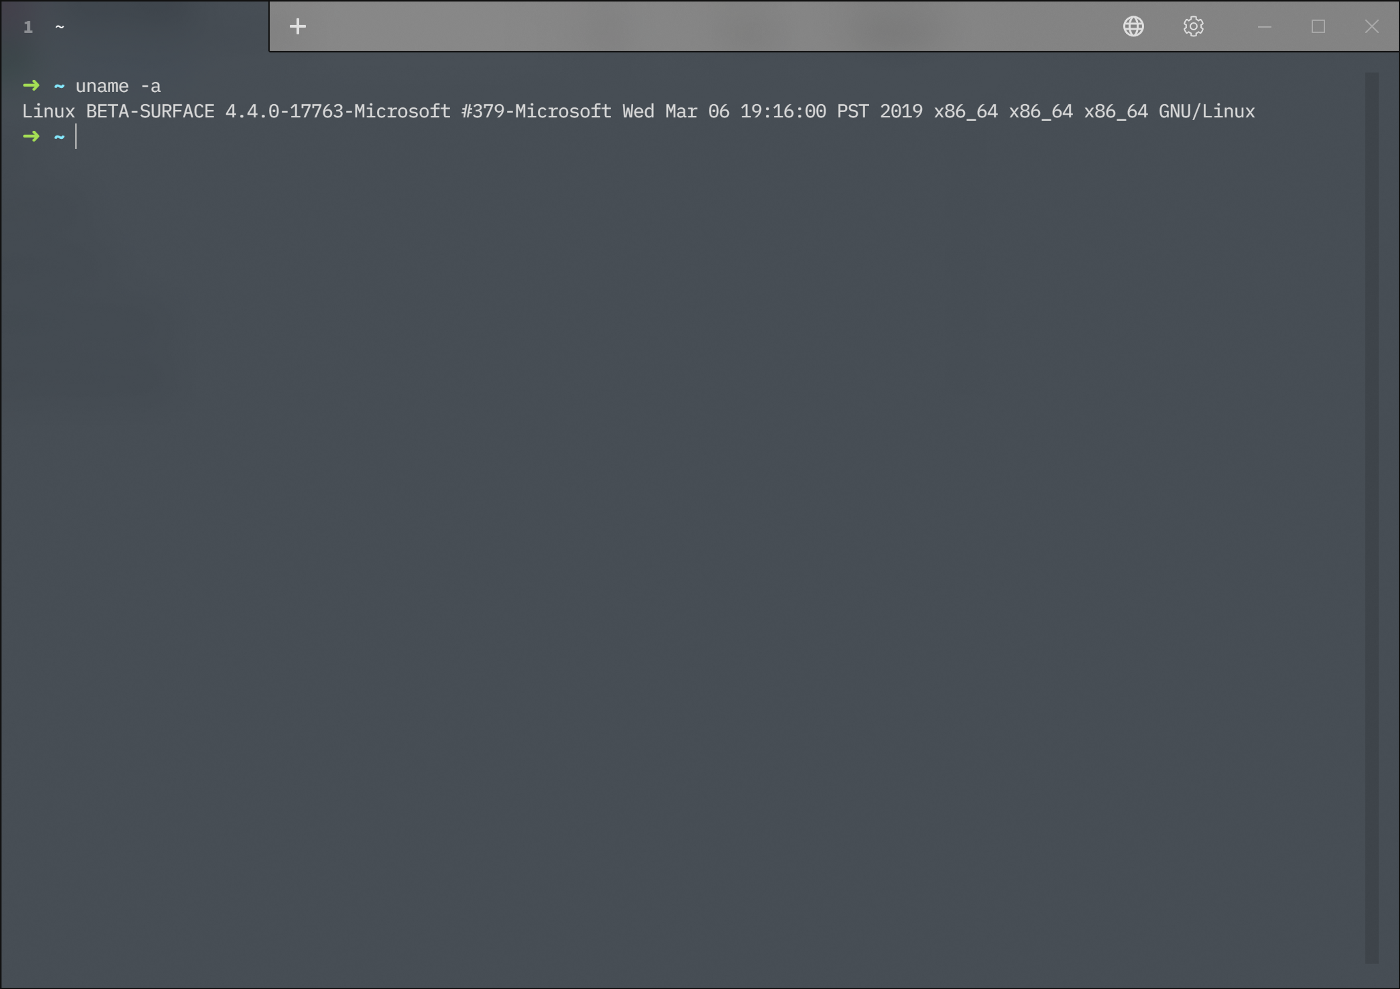 Setup Go Development Environment with VS Code and WSL on Windows